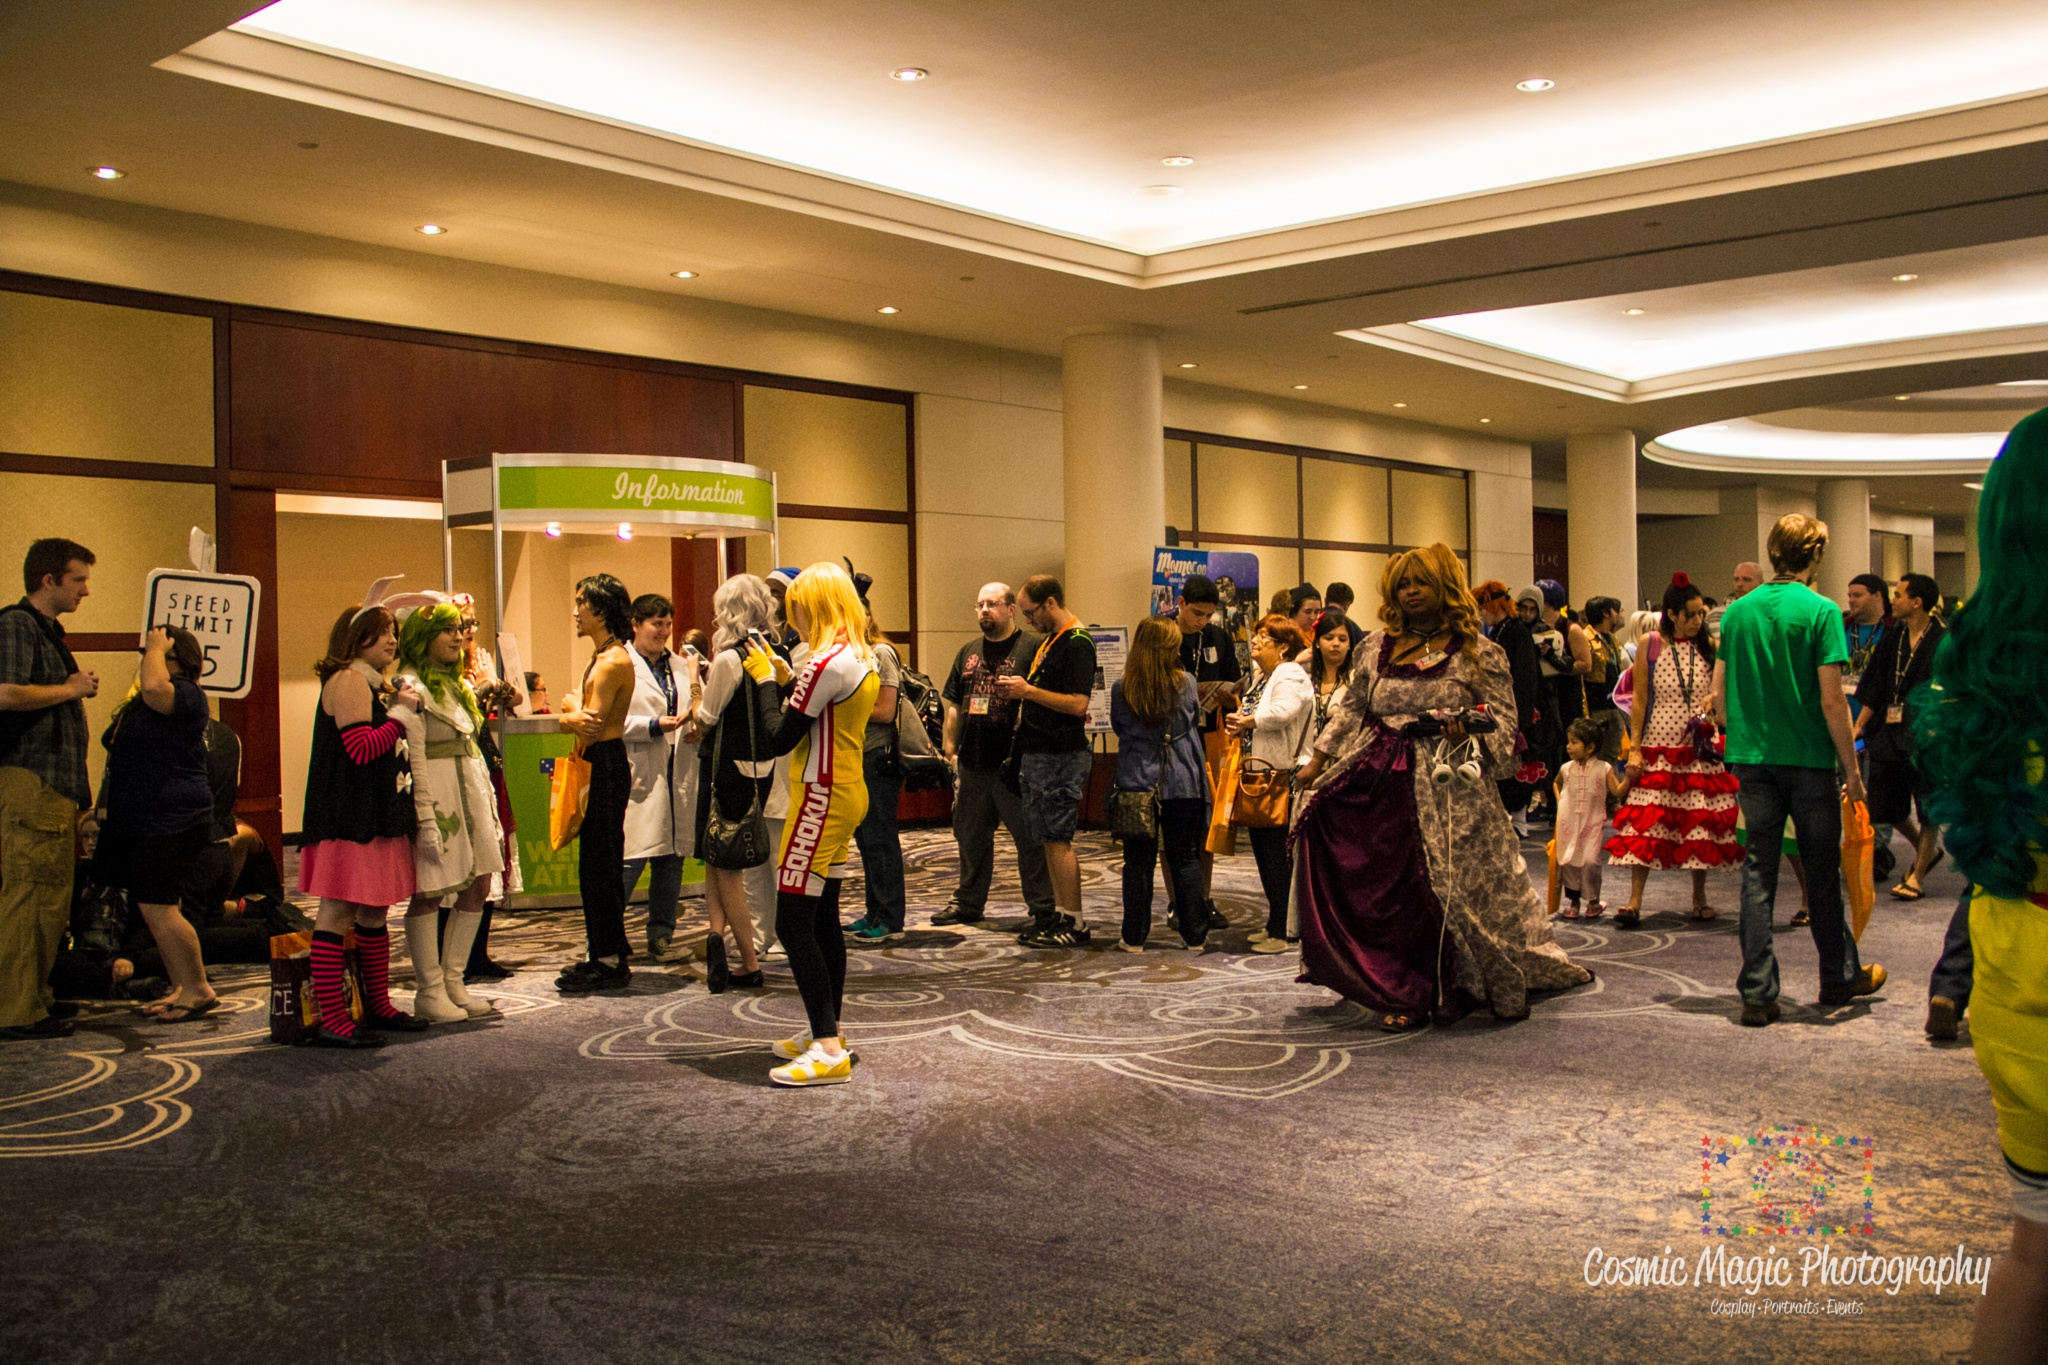 Anime Weekend Atlanta 2015 - Convention Area Shots by Gina Adkins